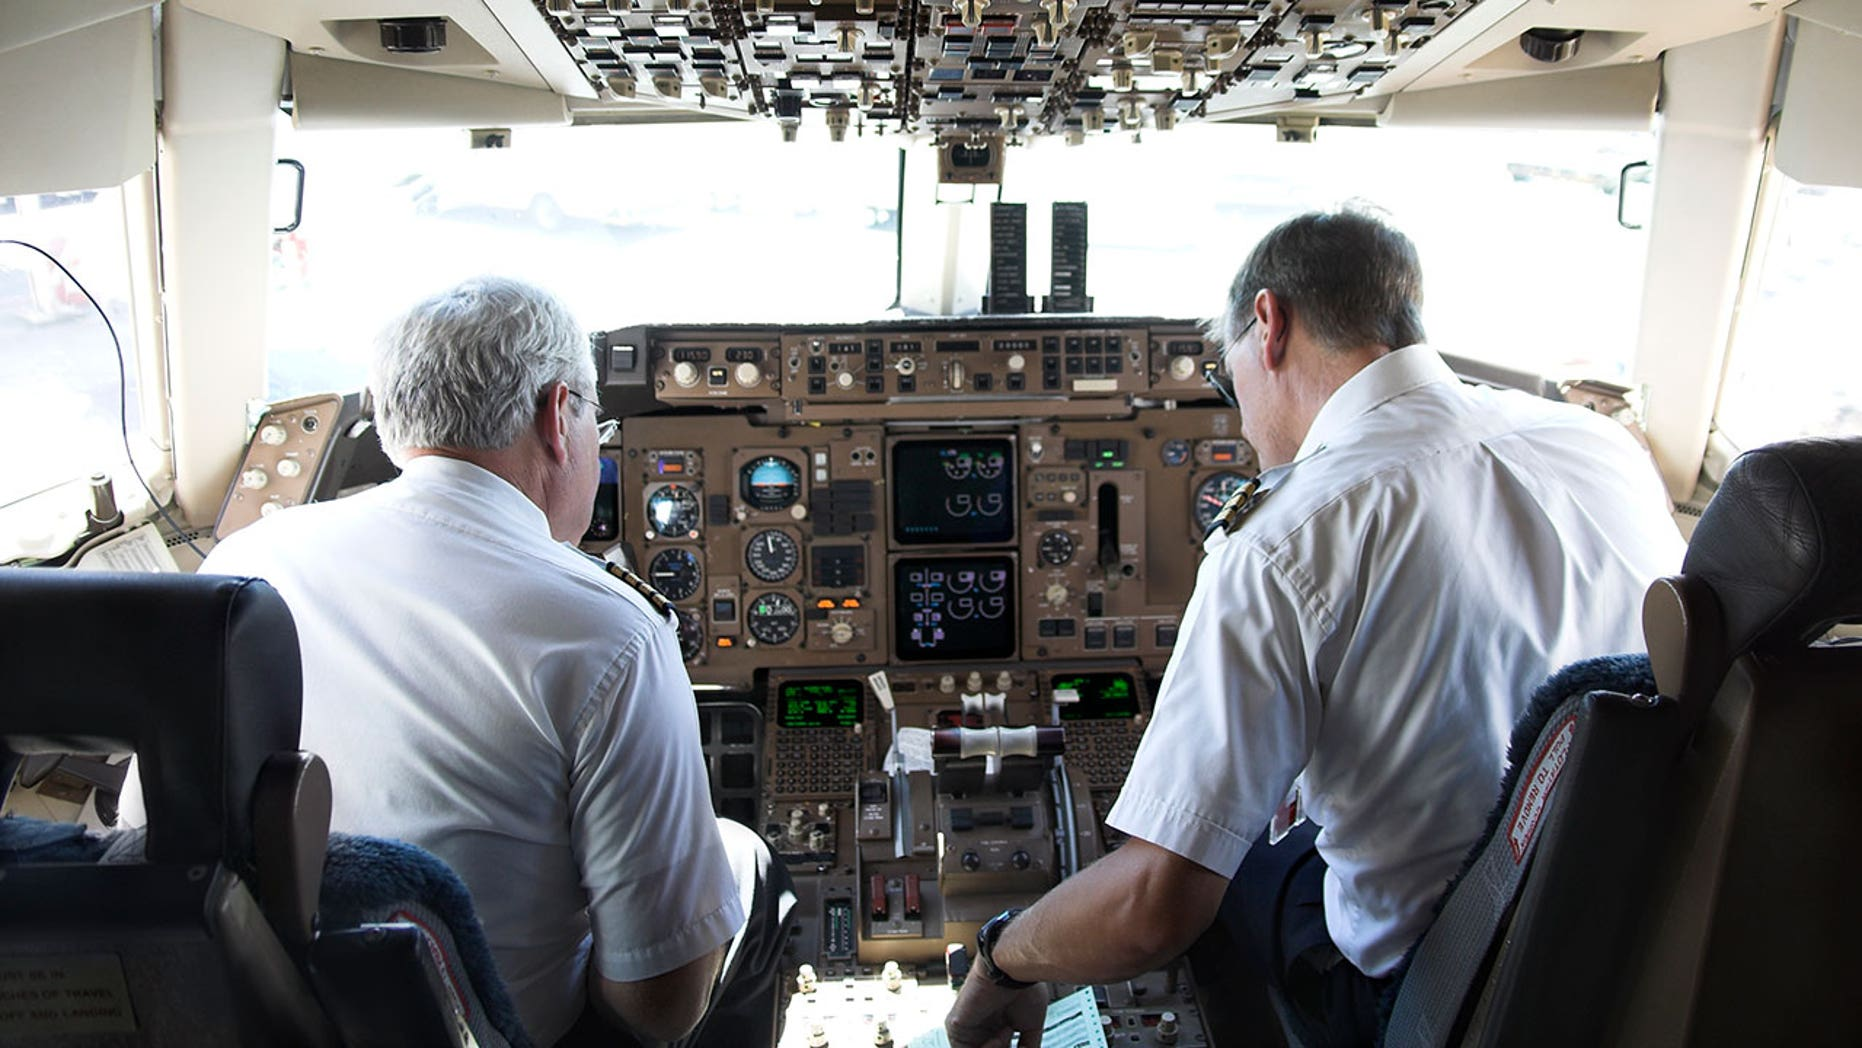 On many airlines, the pilot and co-pilot are prohibited from eating the same meals.